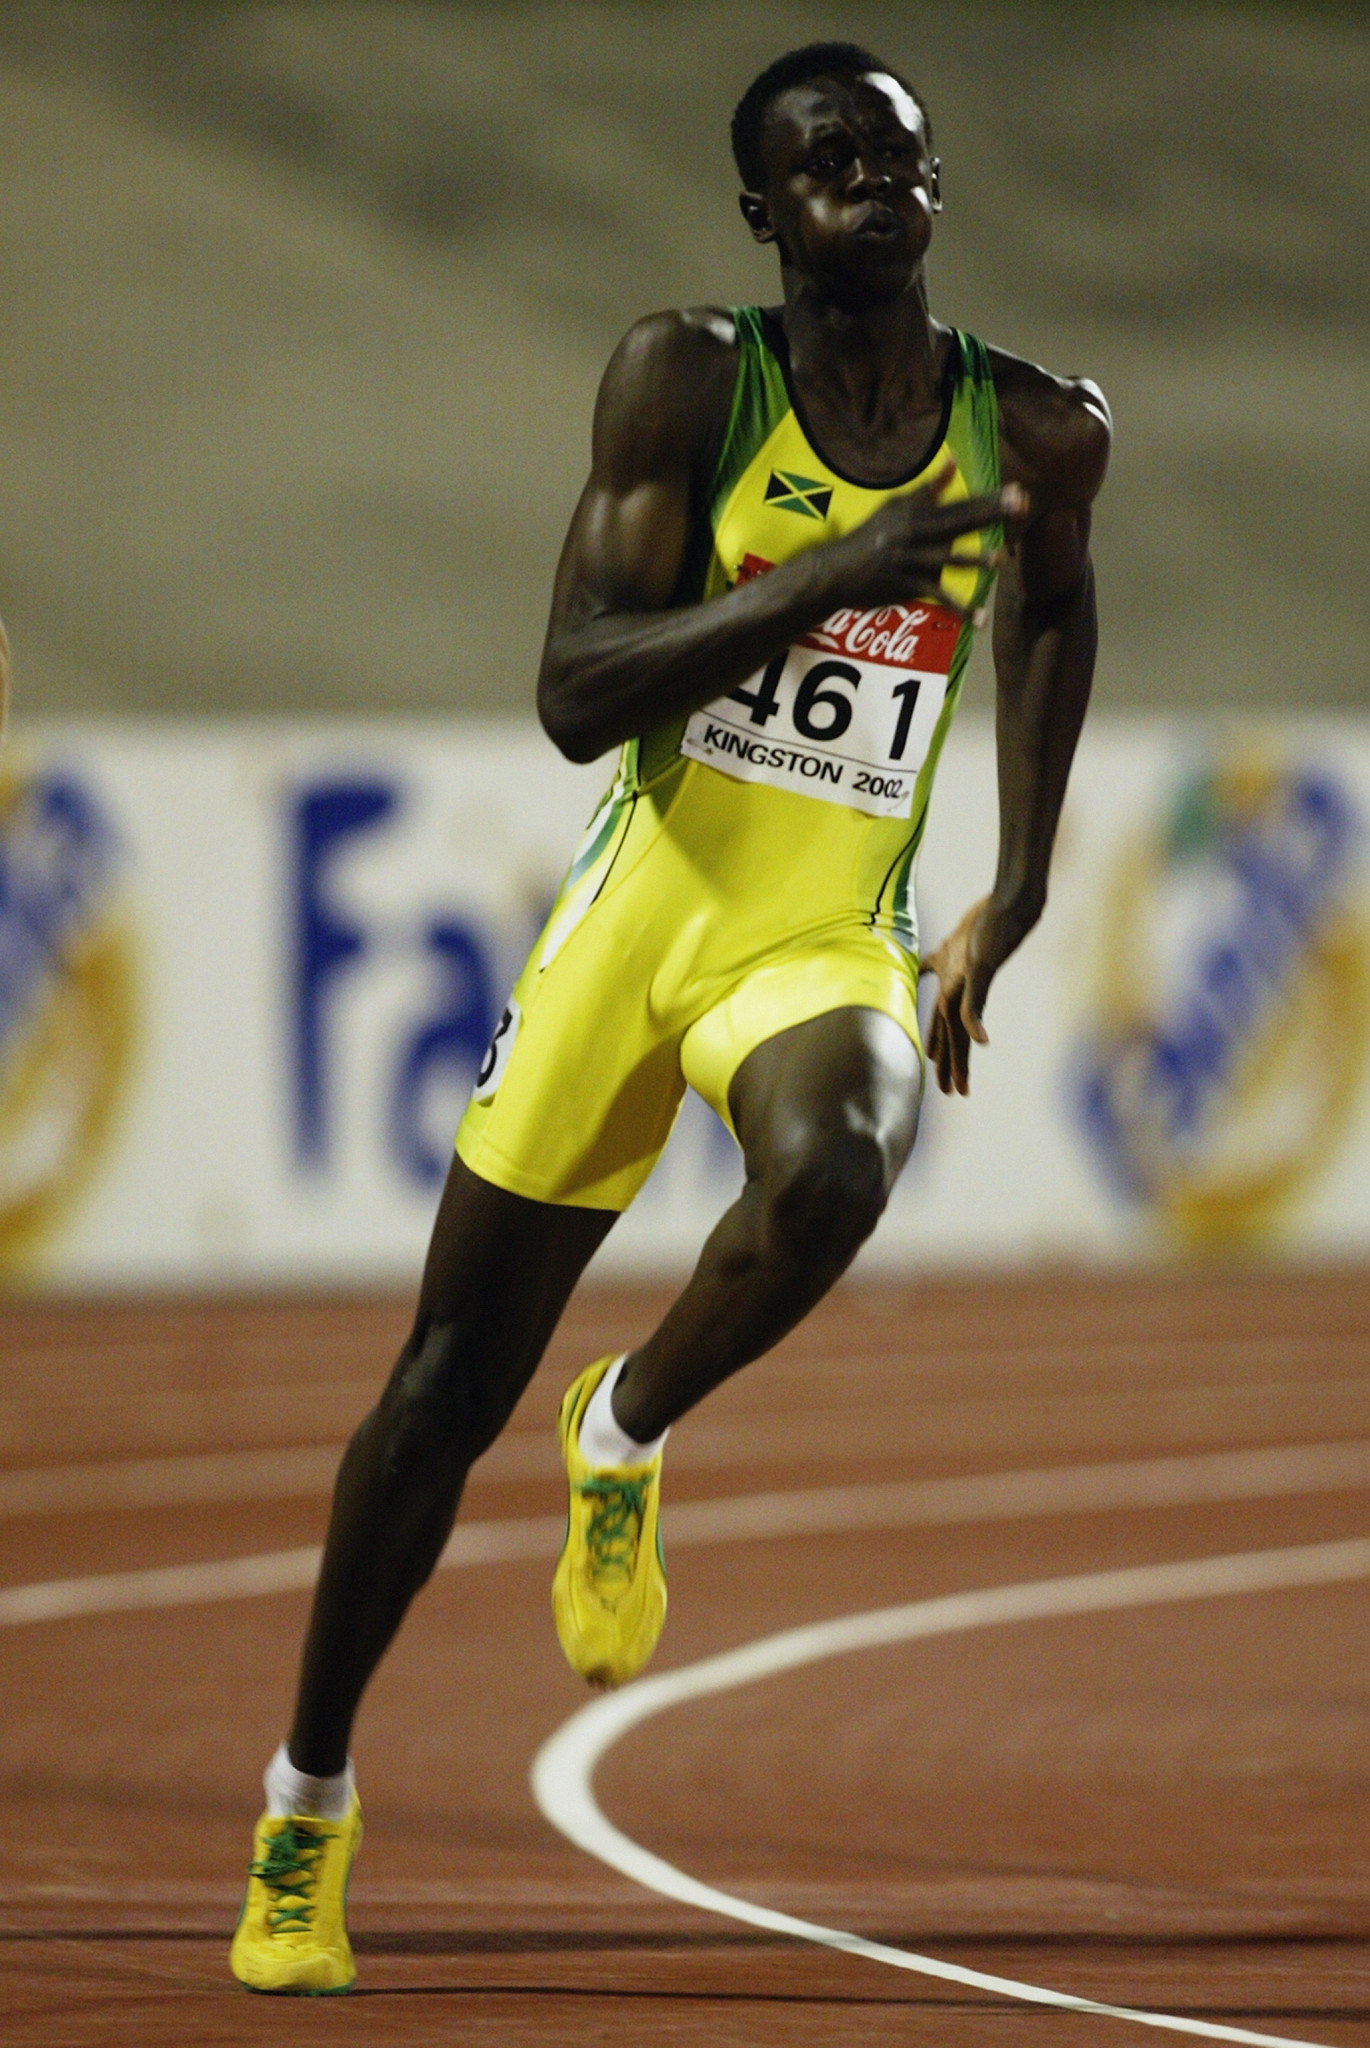 Jamaica's Usain Bolt en-route to the 2002 world junior 200m title in his home city of Kingston - at the age of 15 ©Getty Images